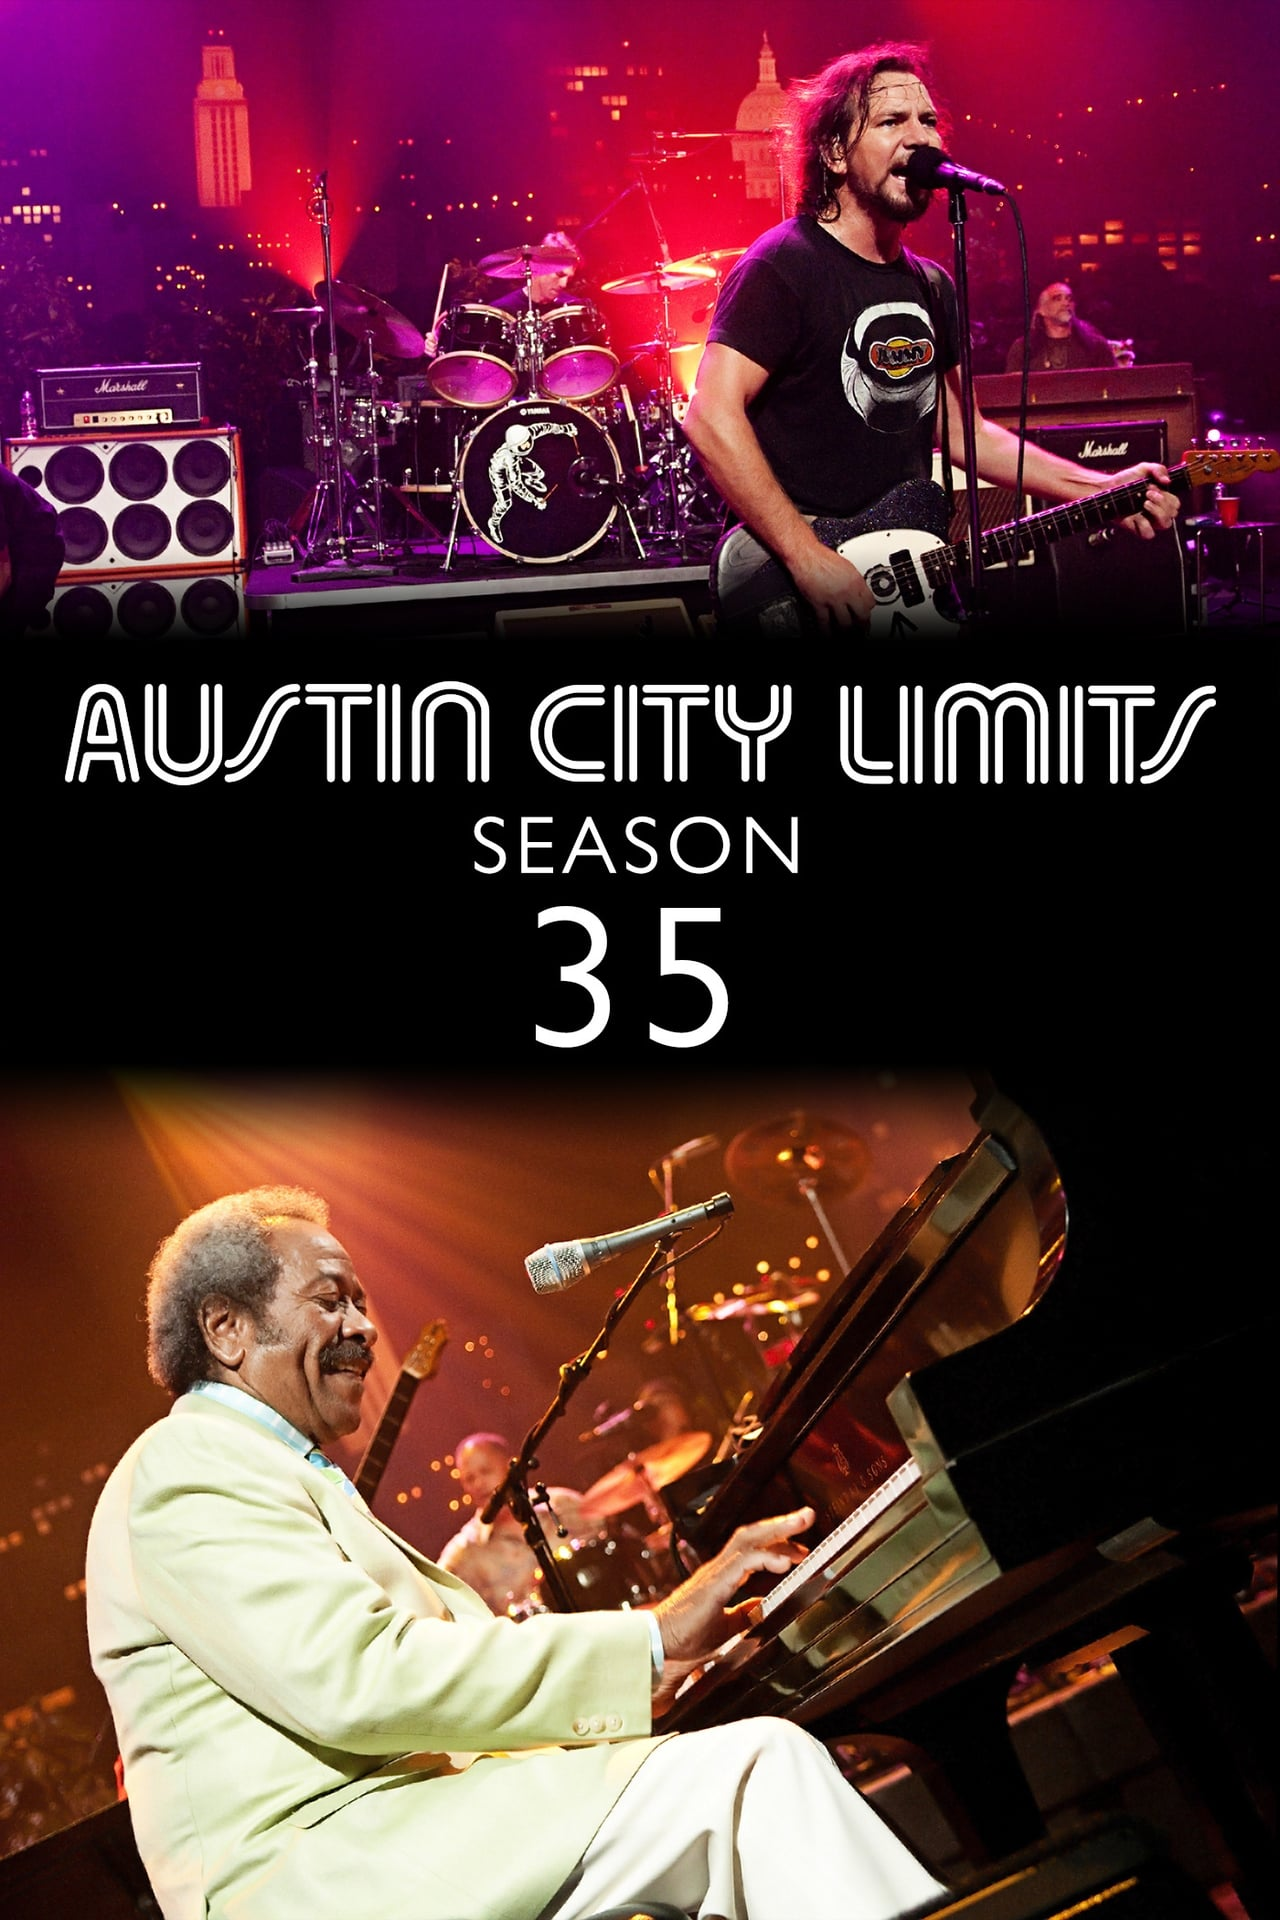 Putlocker Austin City Limits Season 35 (2009)